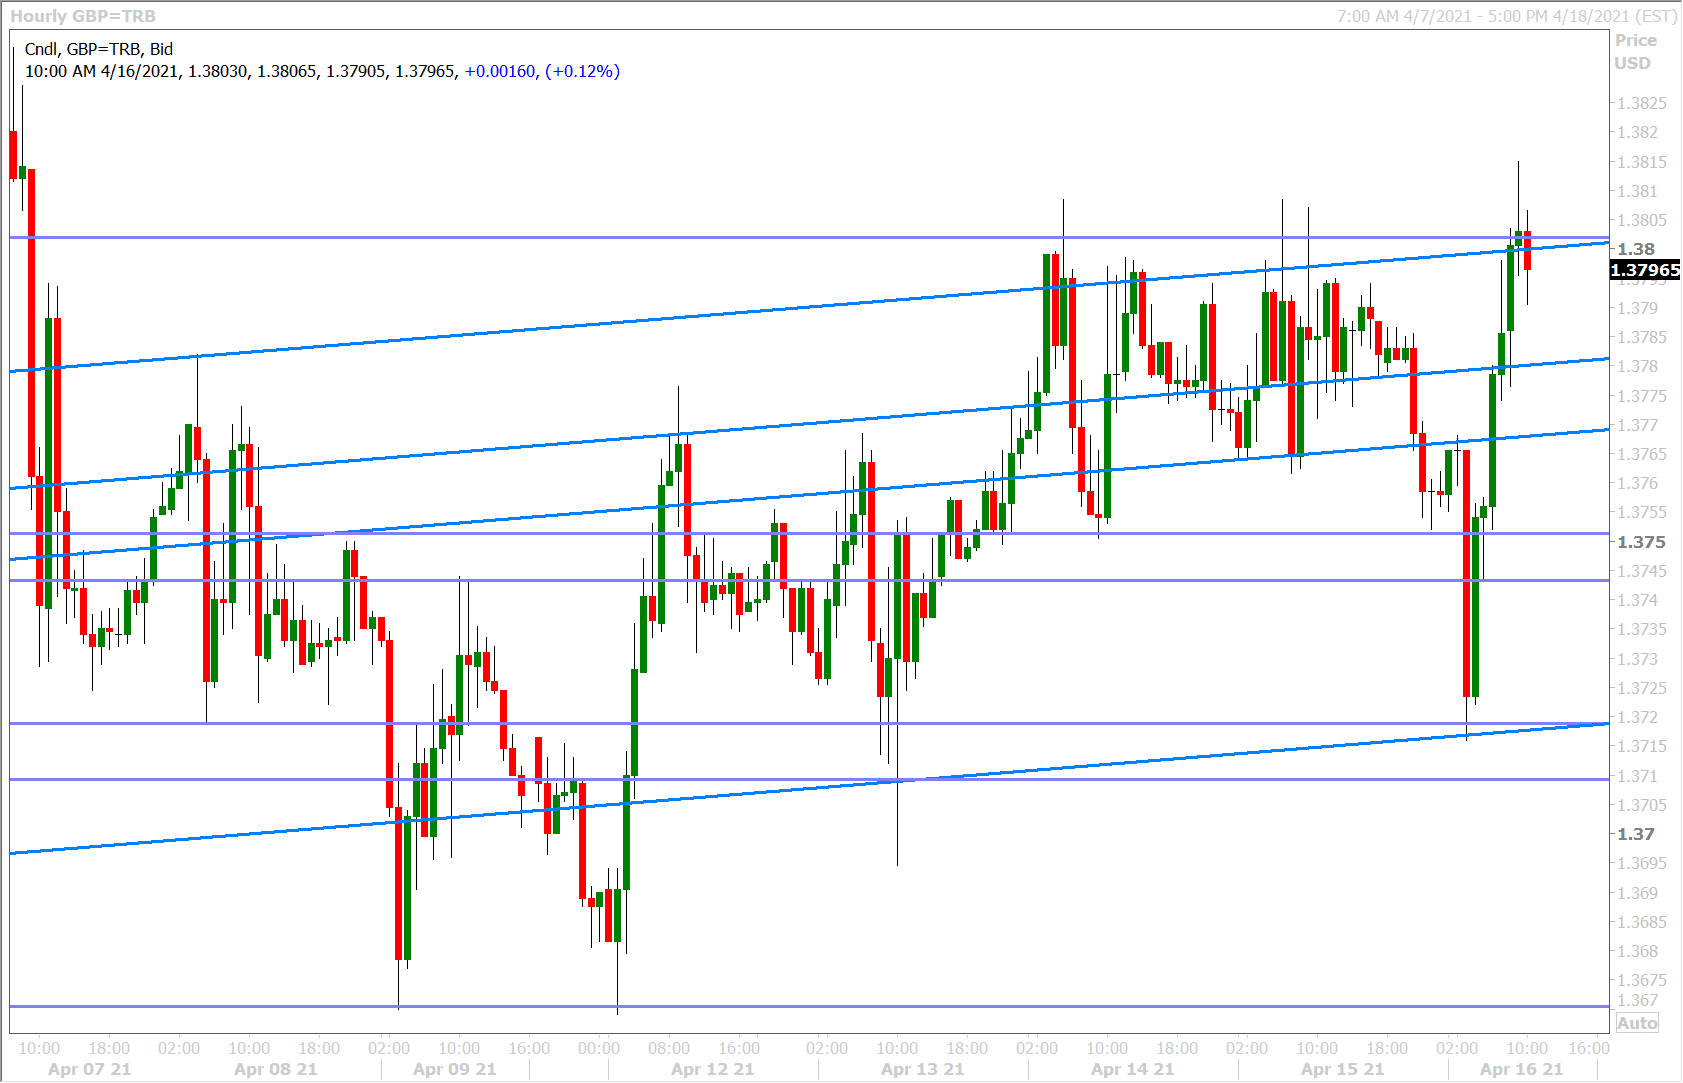 GBP to USD technicals